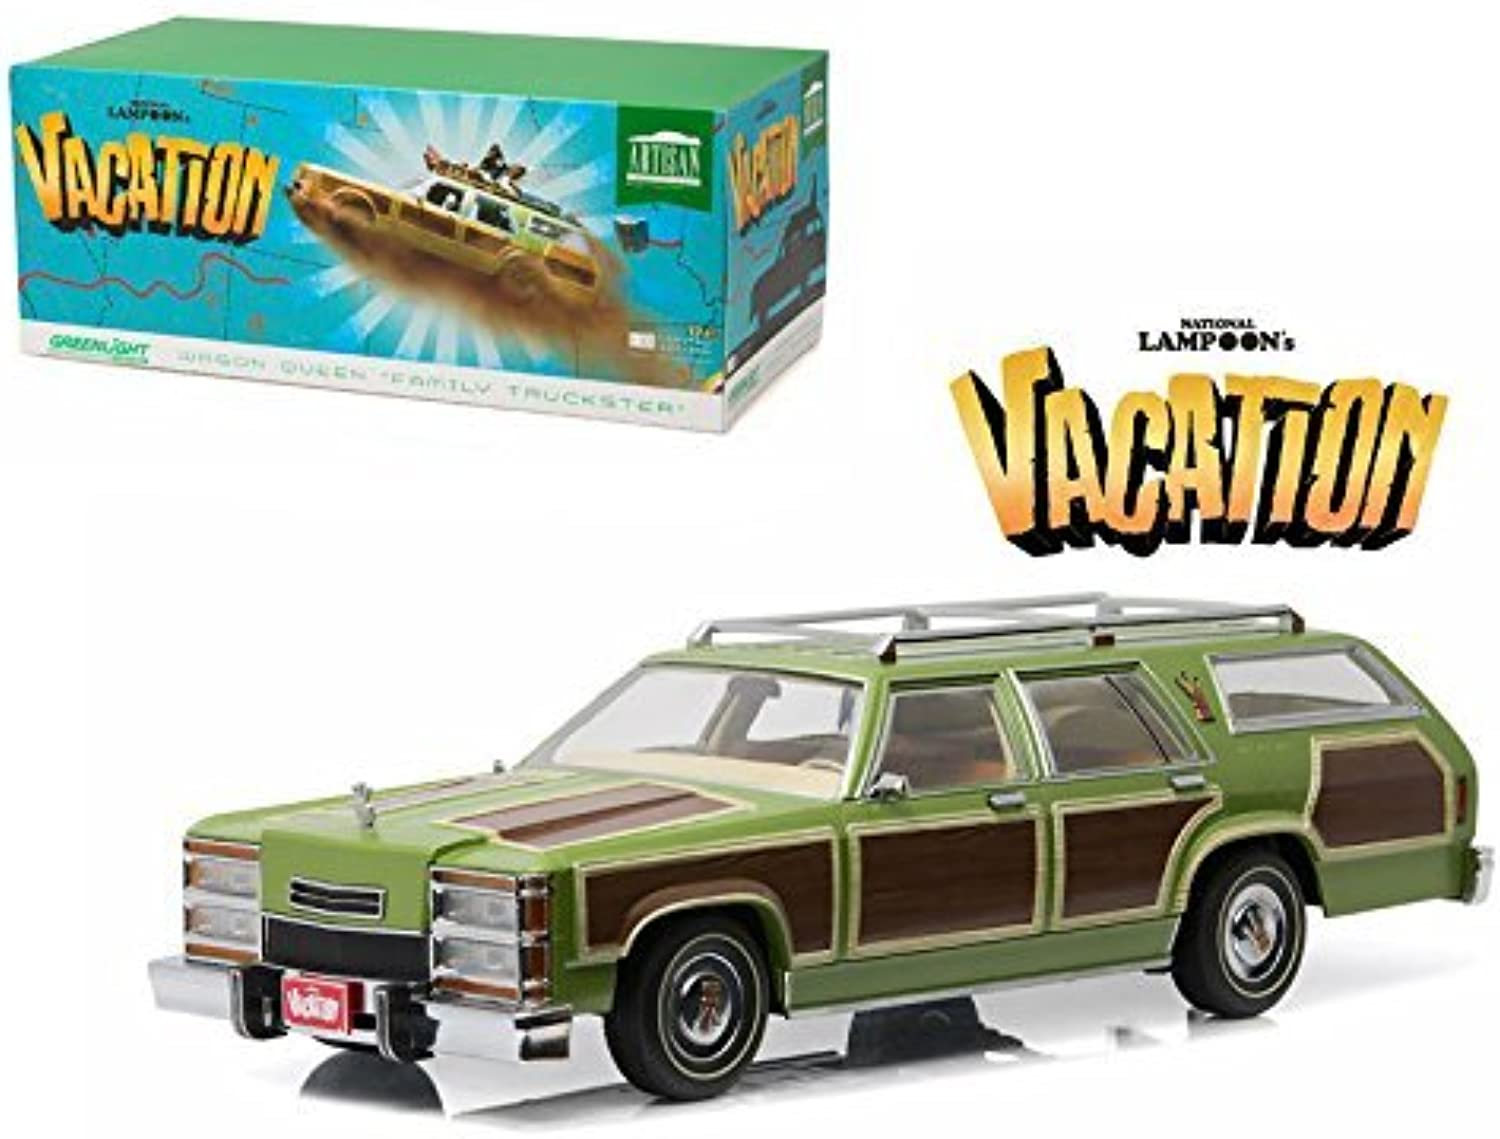 NEW 1 18 GrünLIGHT COLLECTION - NATIONAL LAMPOON'S VACATION 1979 WAGON QUEEN FAMILY TRUCKSTER Diecast Model Car By Grünlight by Grünlight